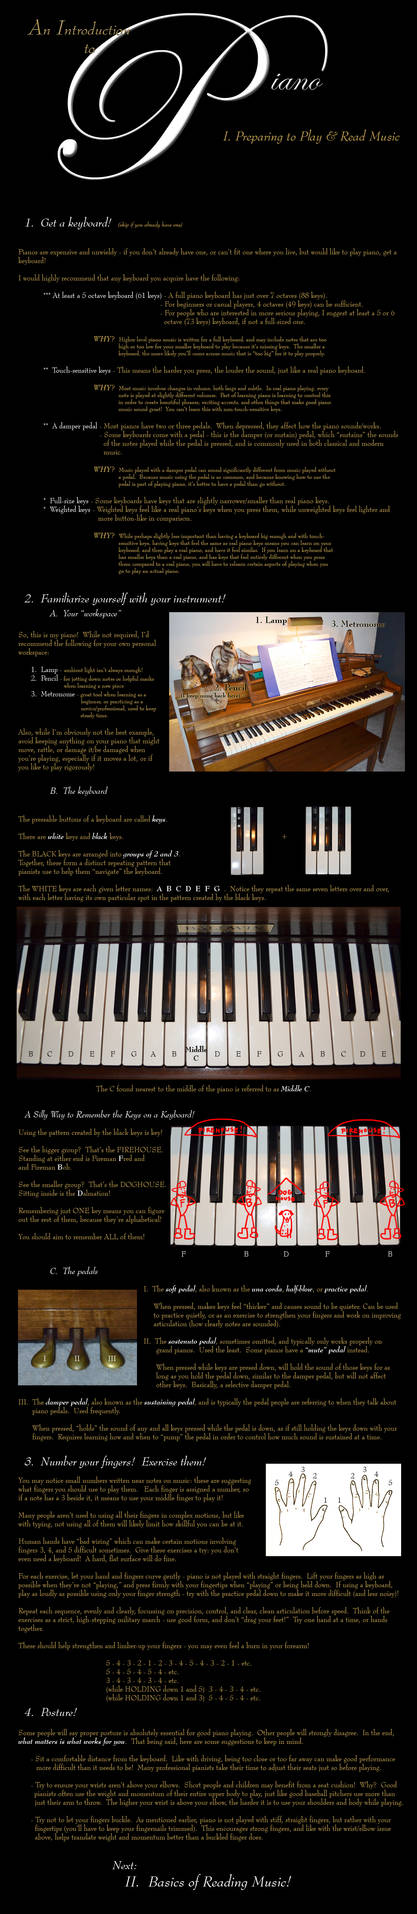 Introduction to Piano I